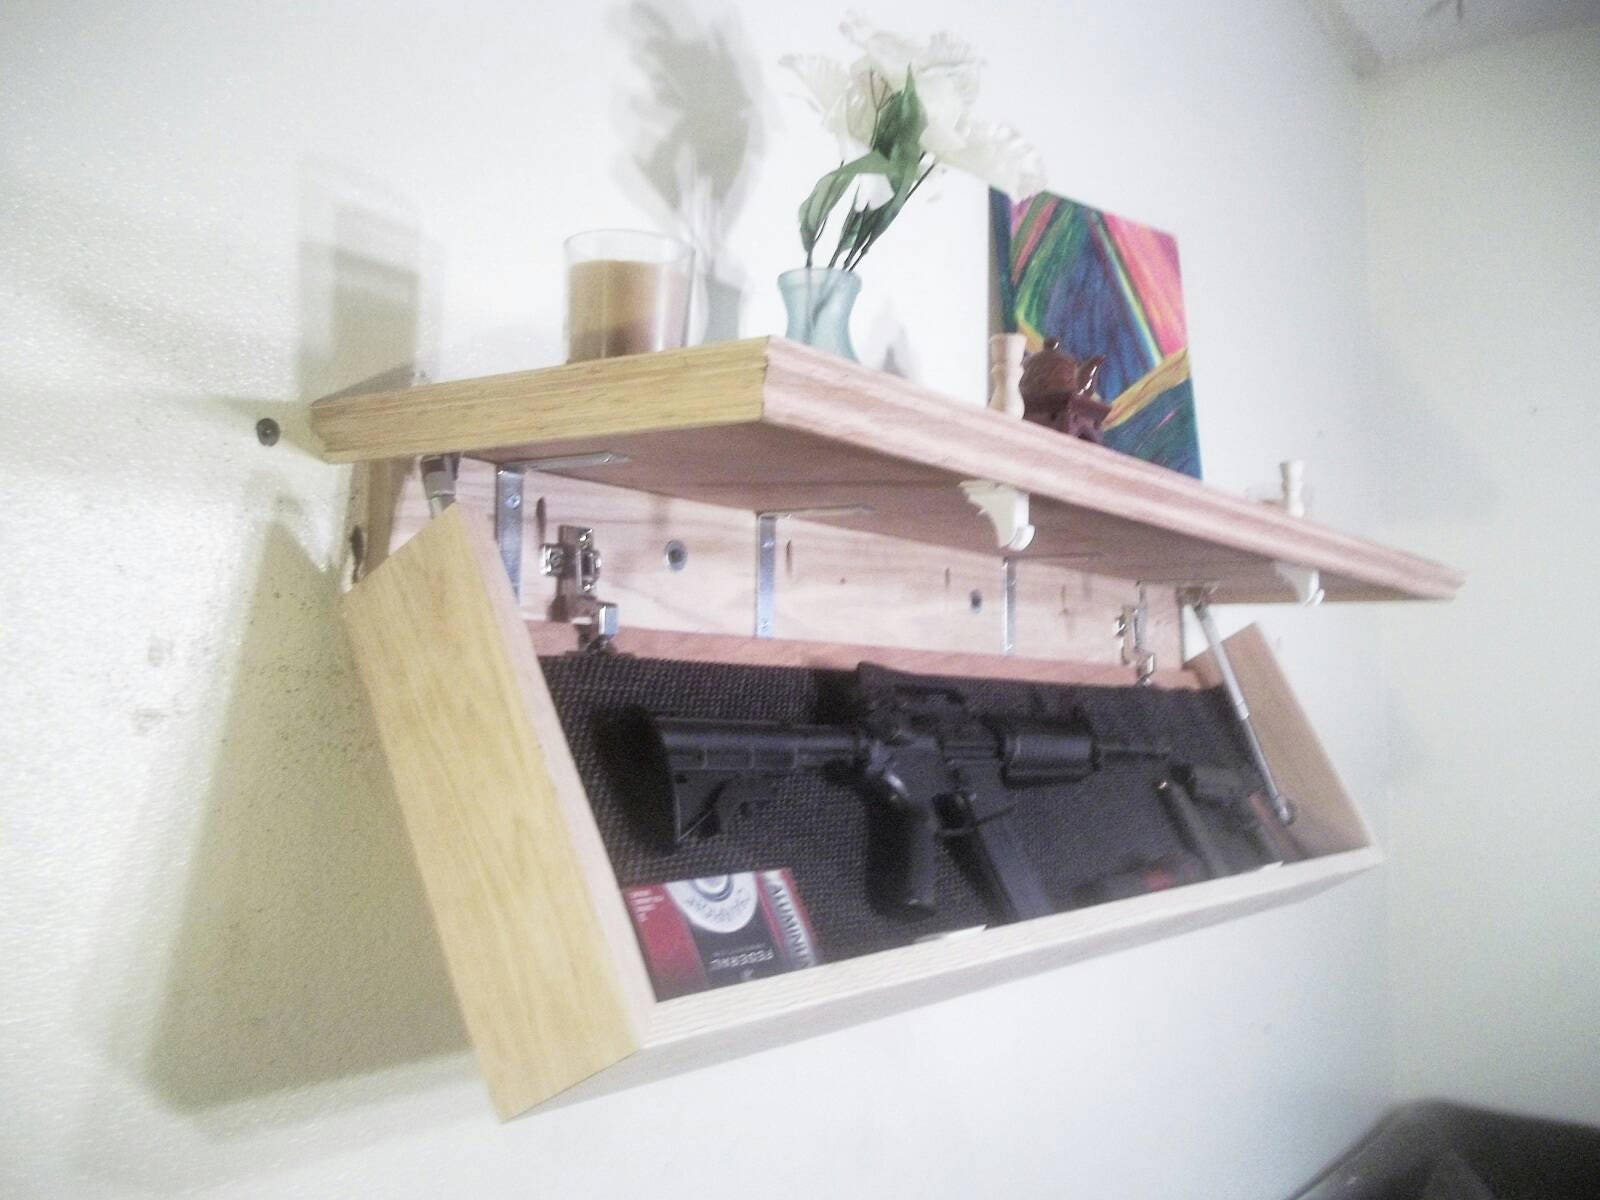 Oak 48 choose color hidden partment floating gun